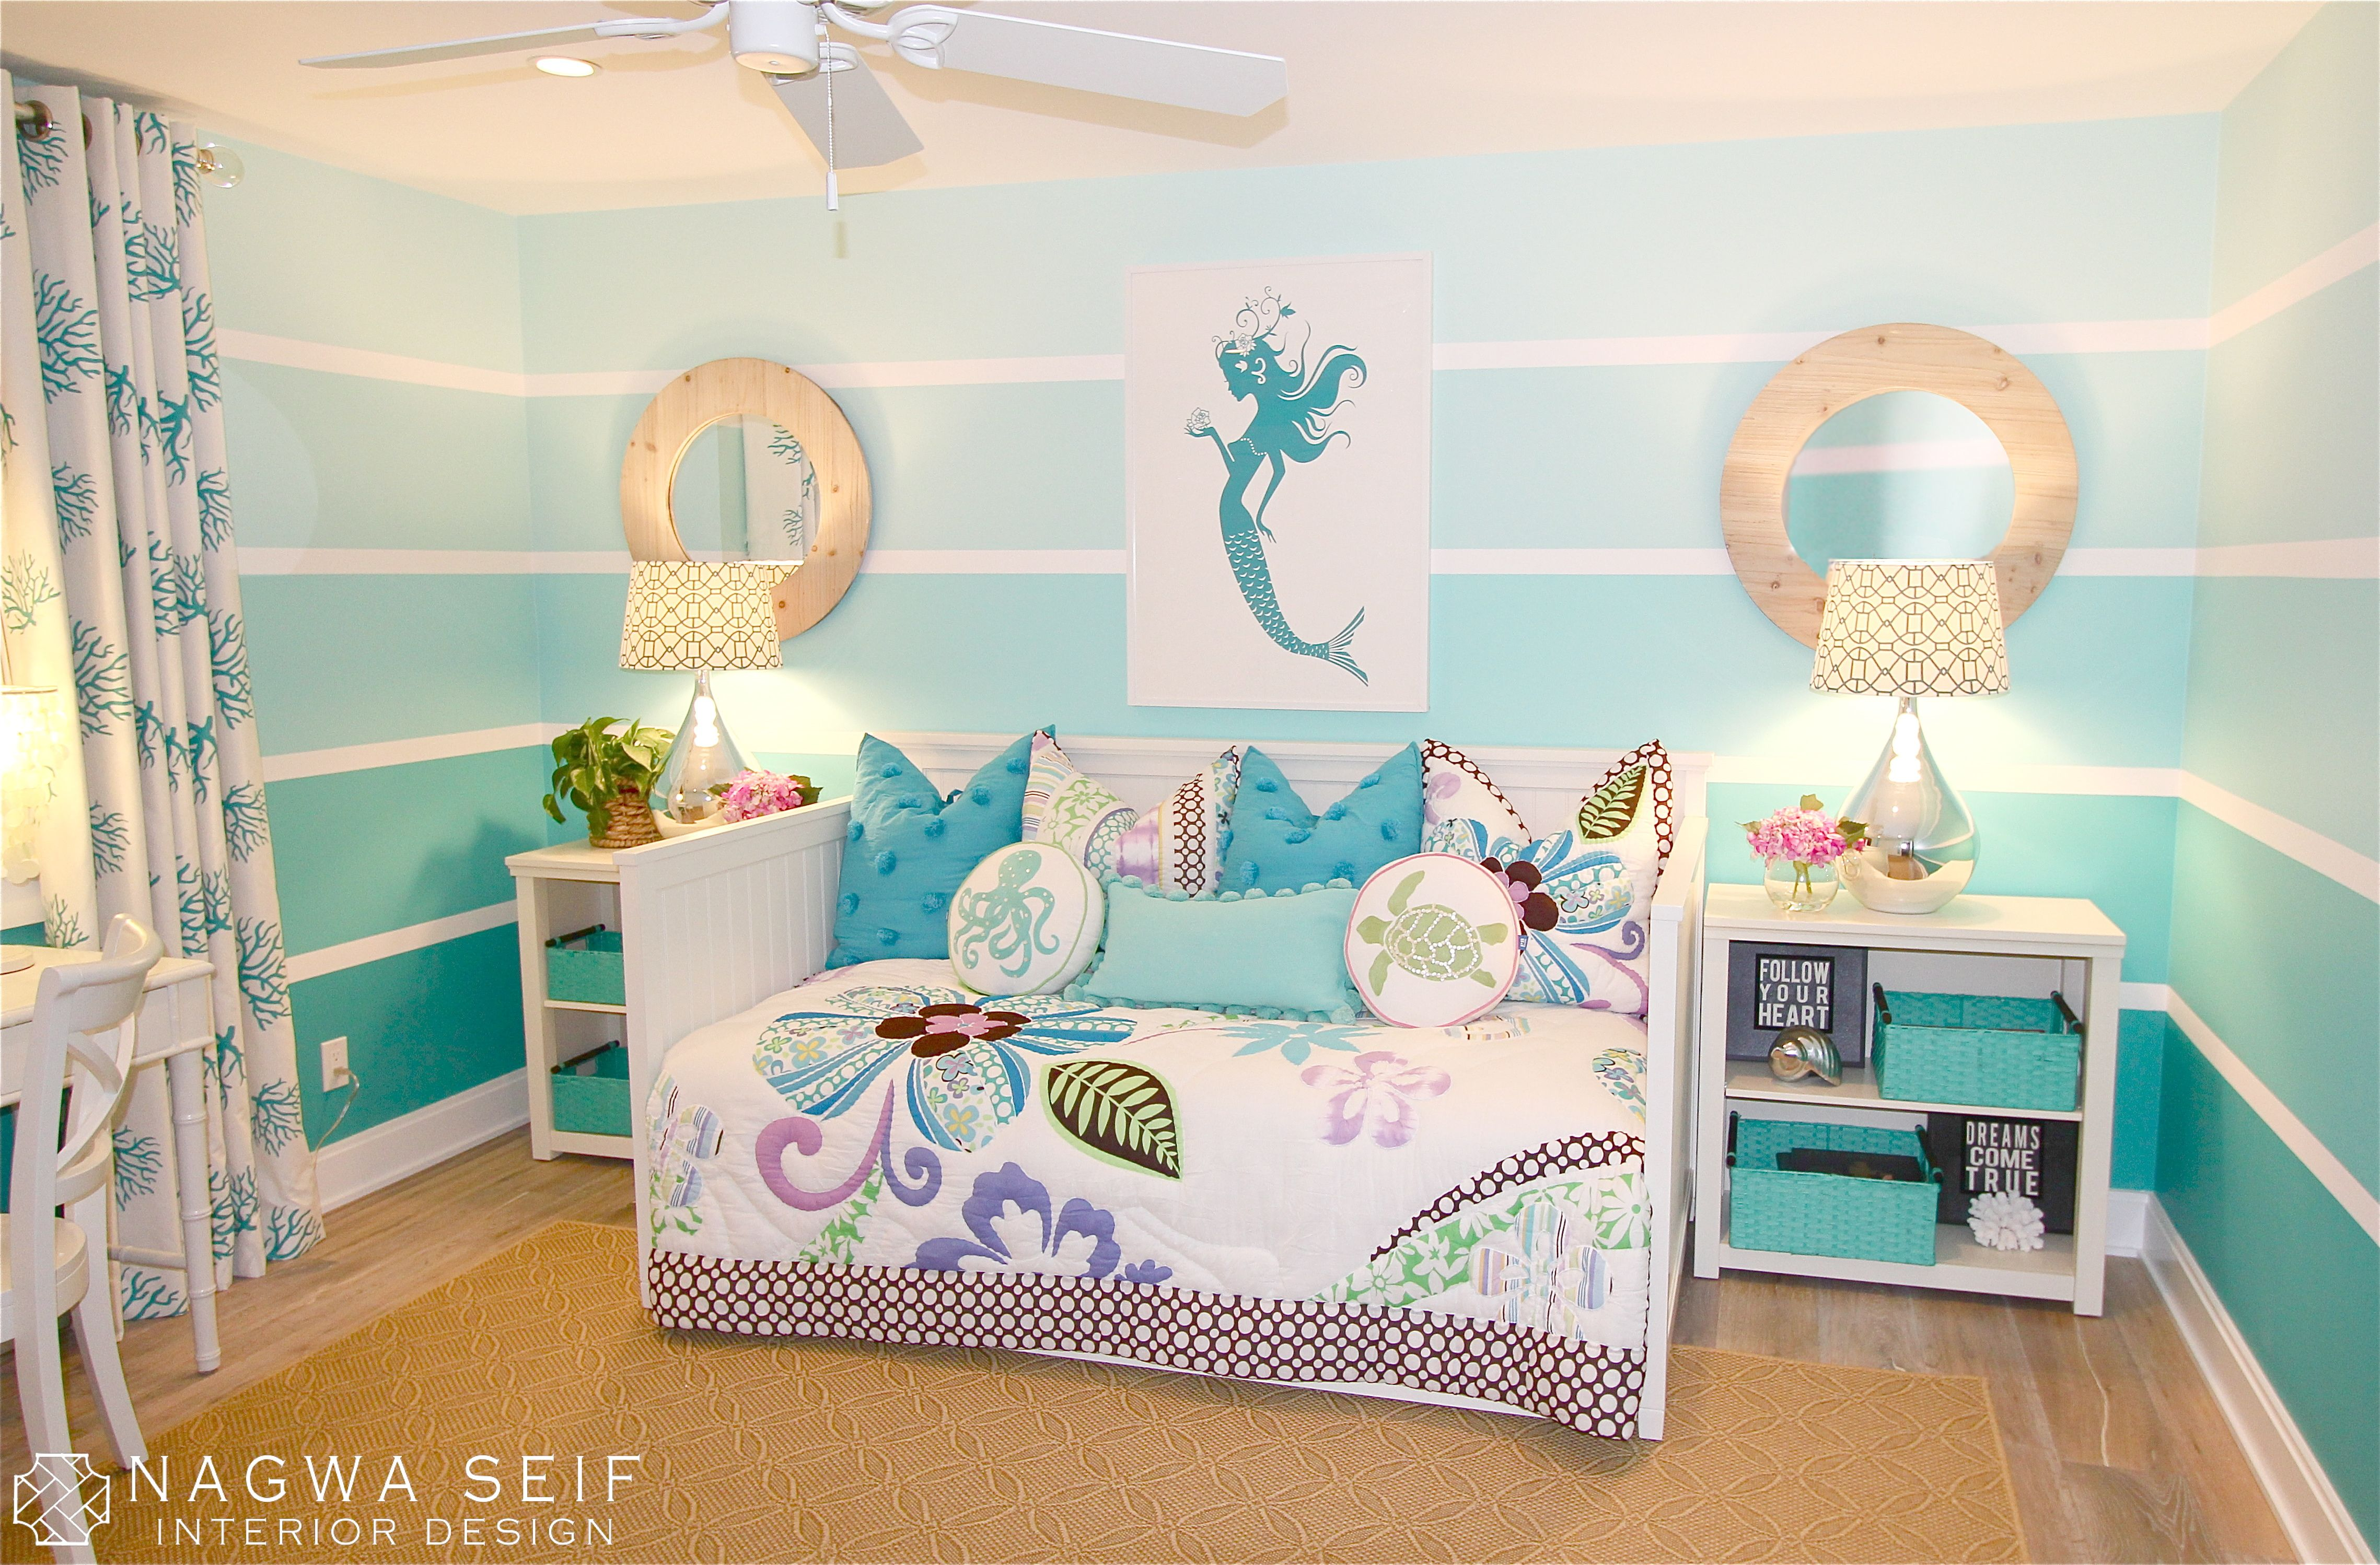 Exceptional 21 Lovely Beach Style Kids Bedroom Design